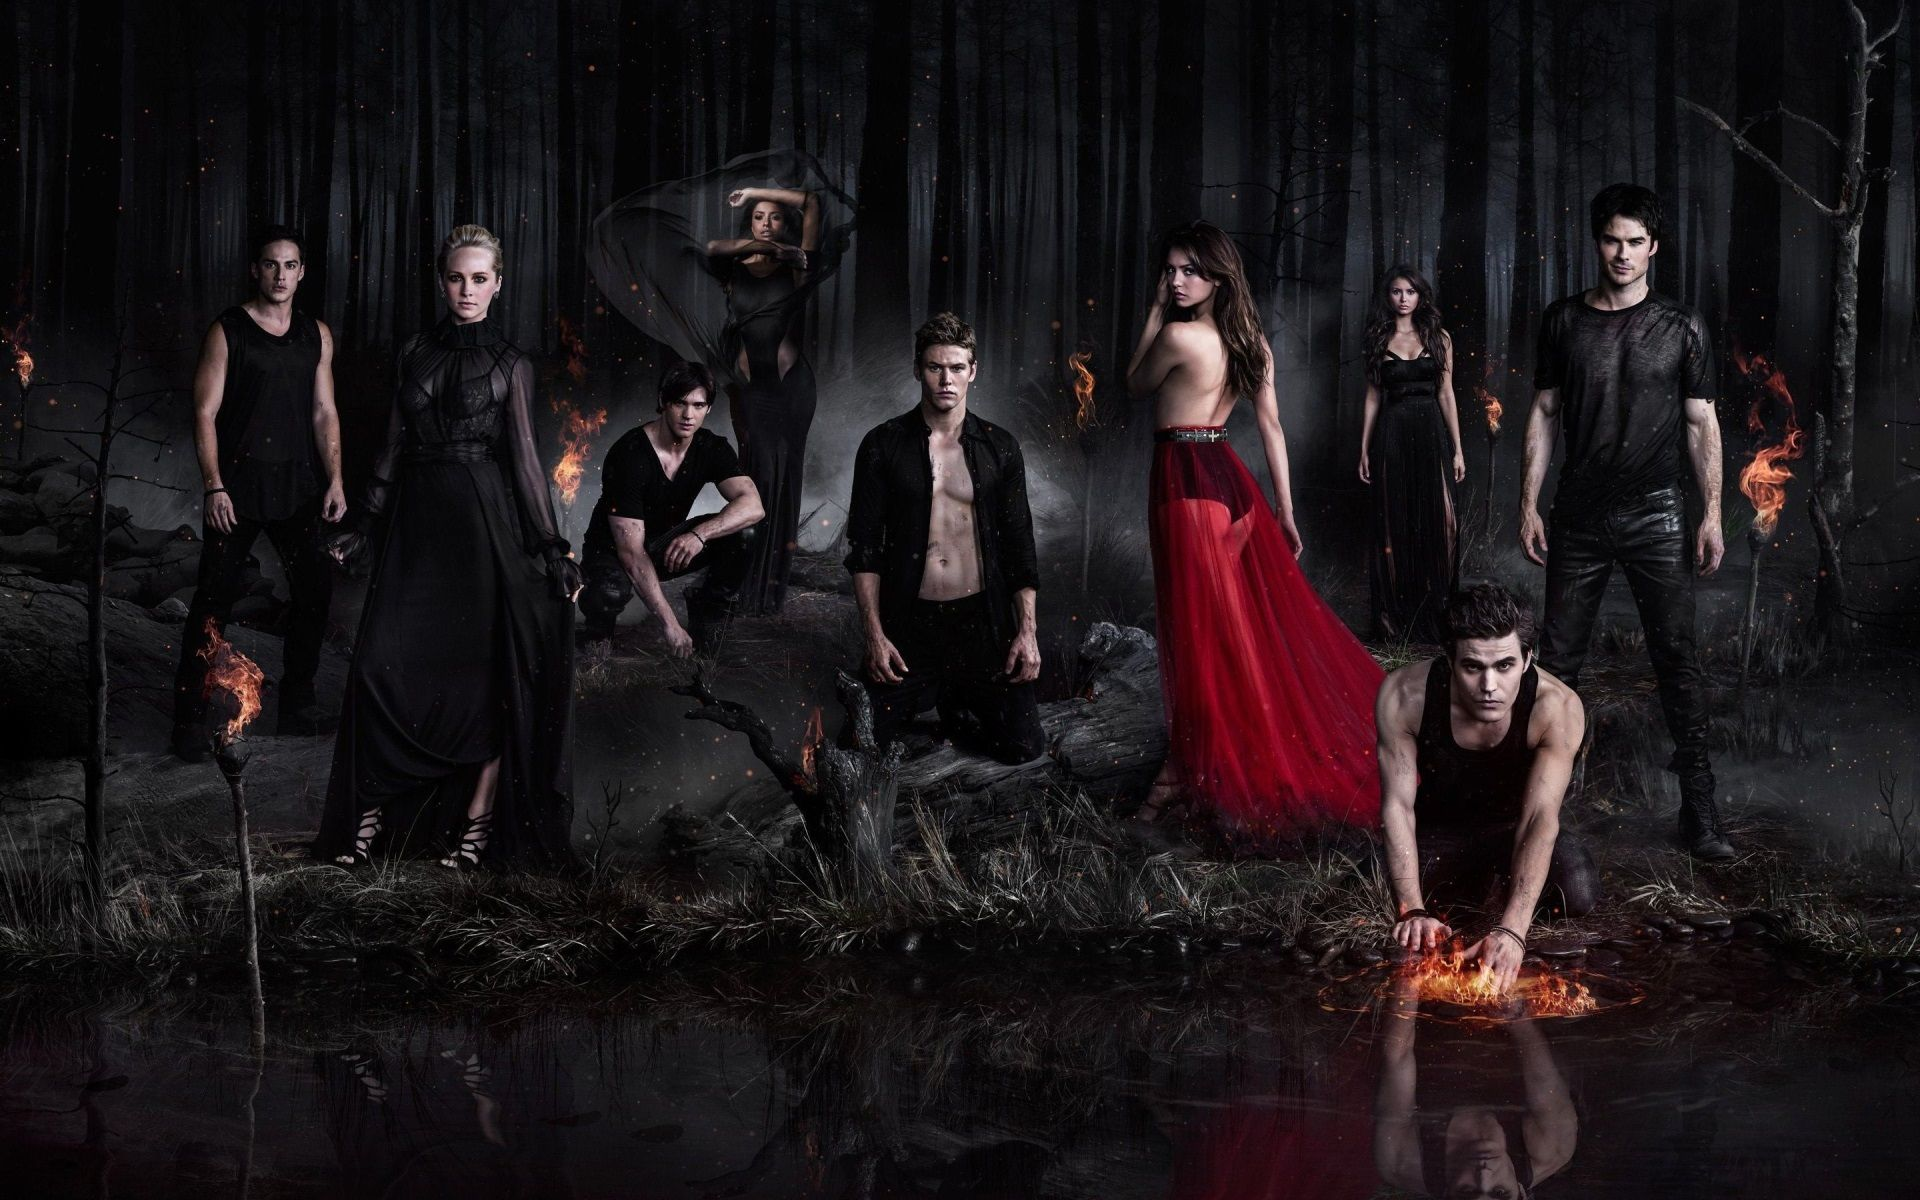 1920x1200 the vampire diaries images for desktop